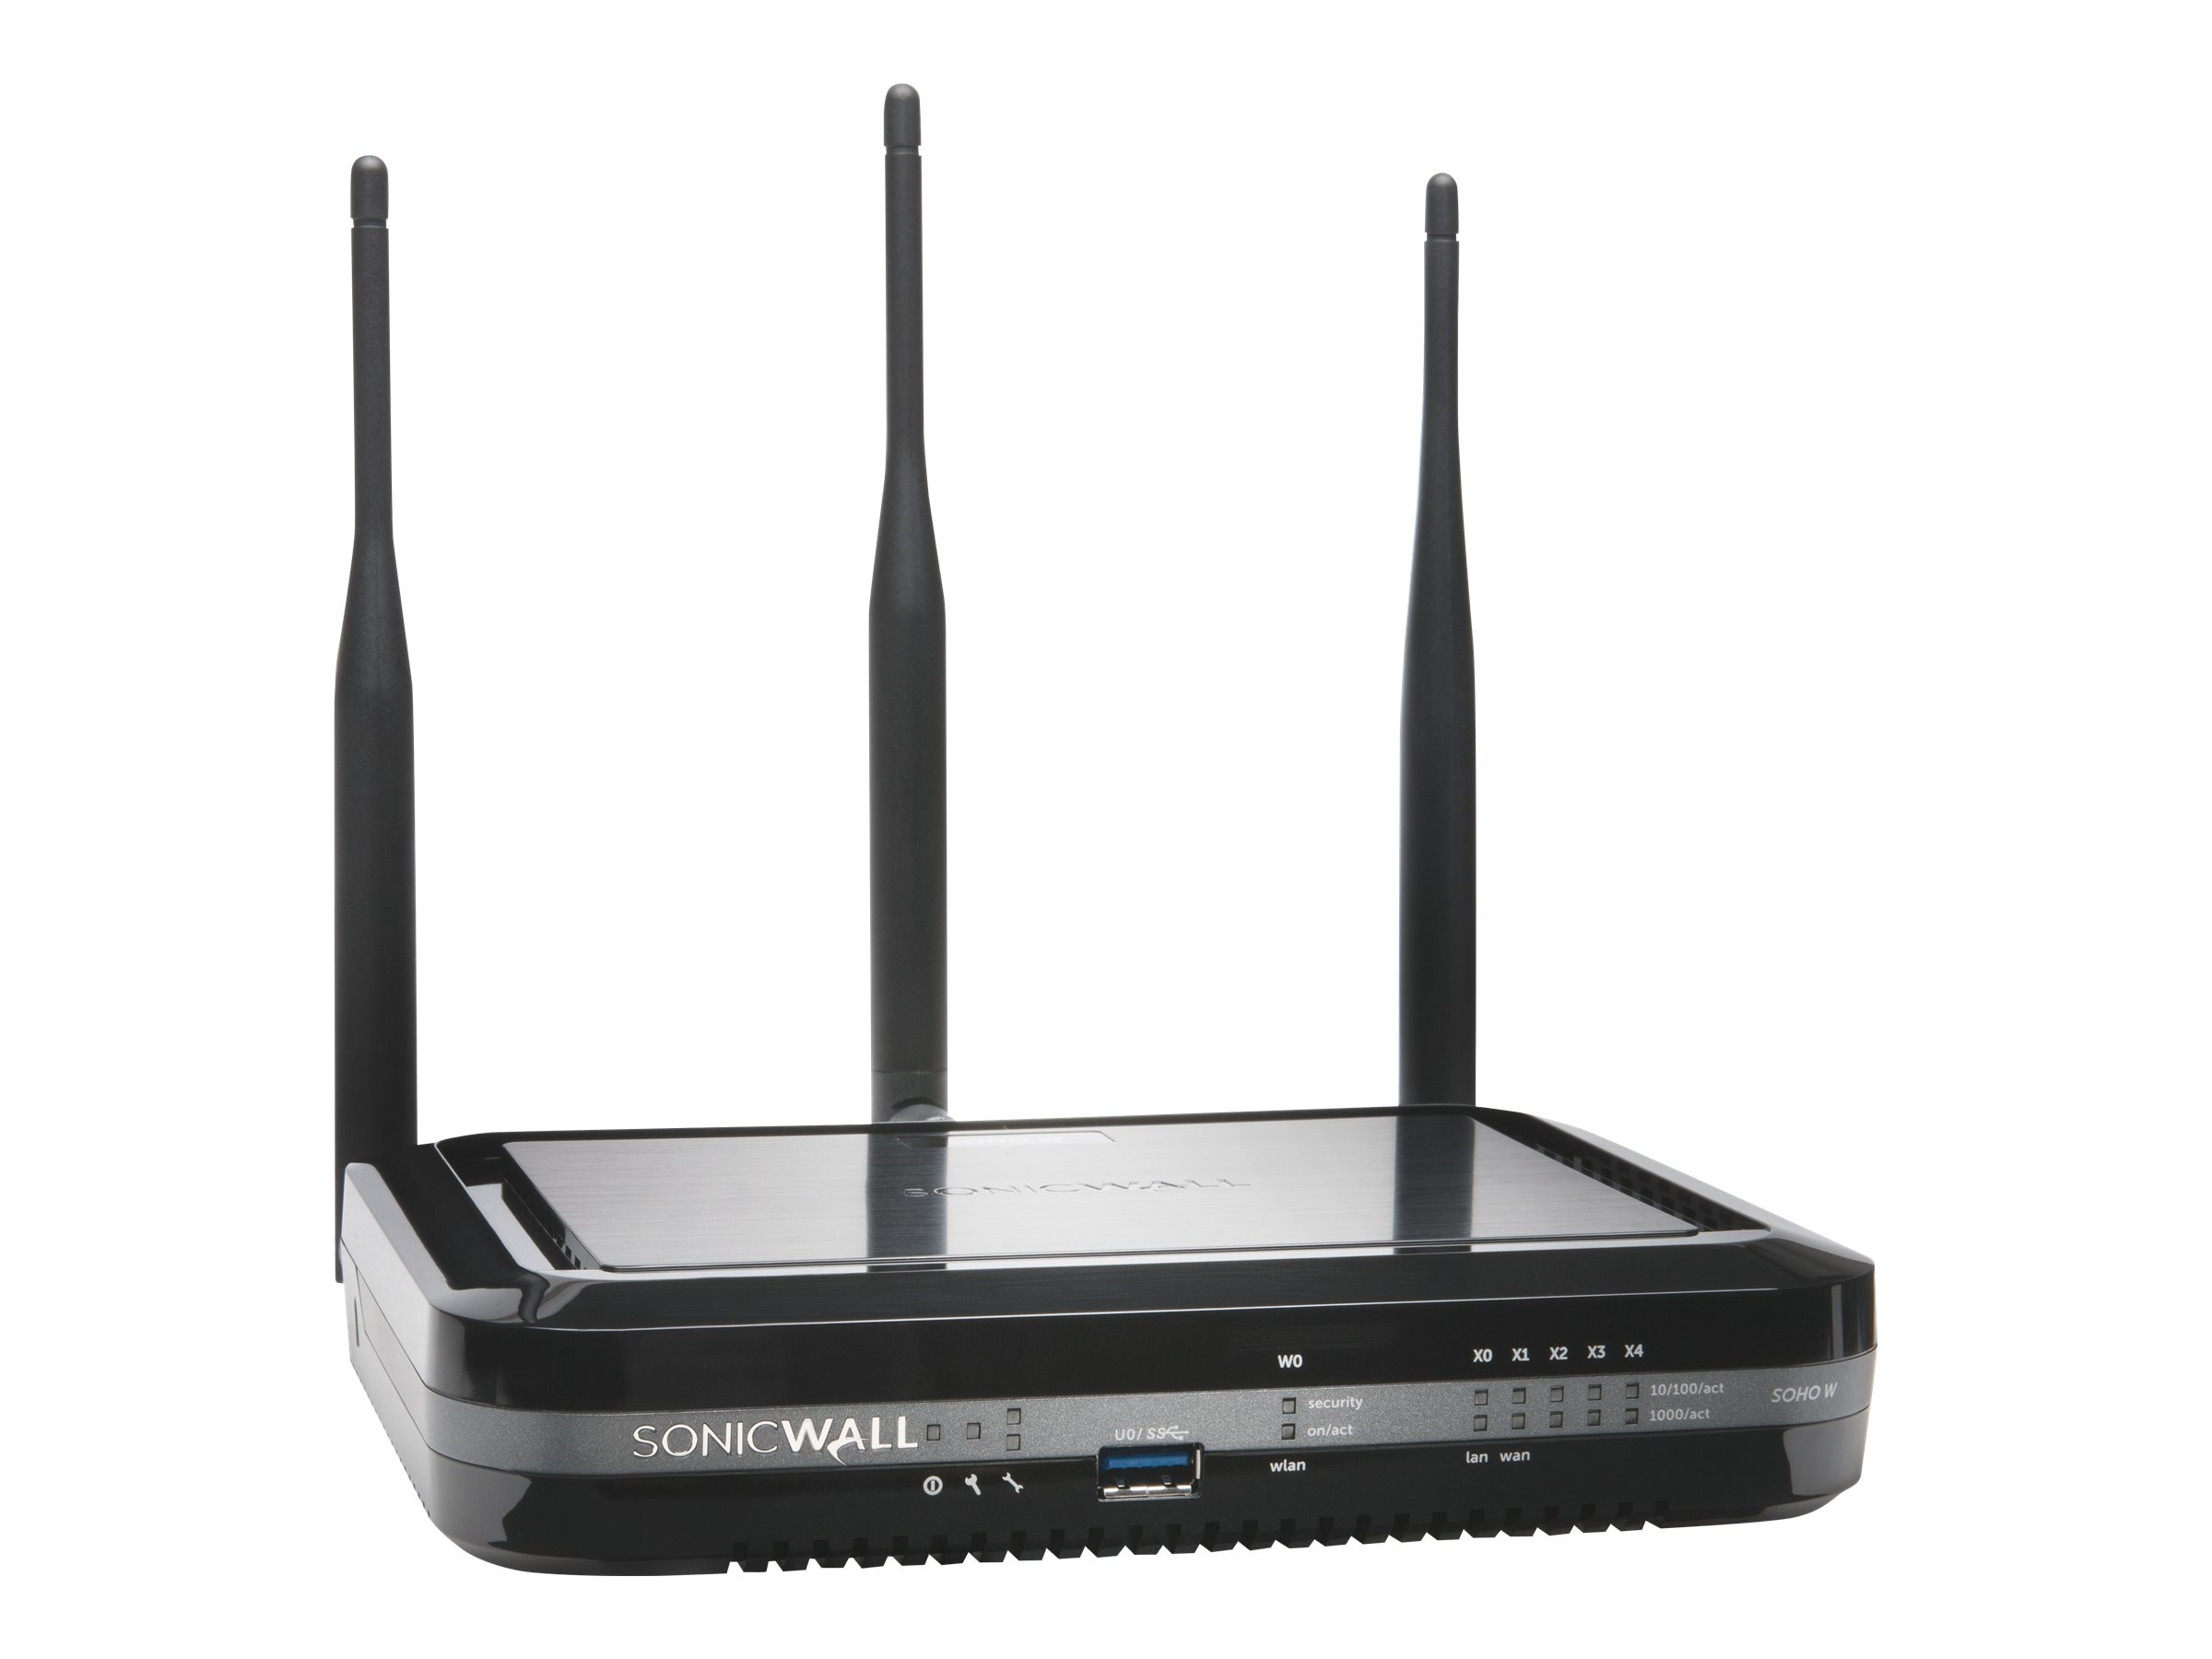 SonicWALL 01-SSC-0653 Image 3